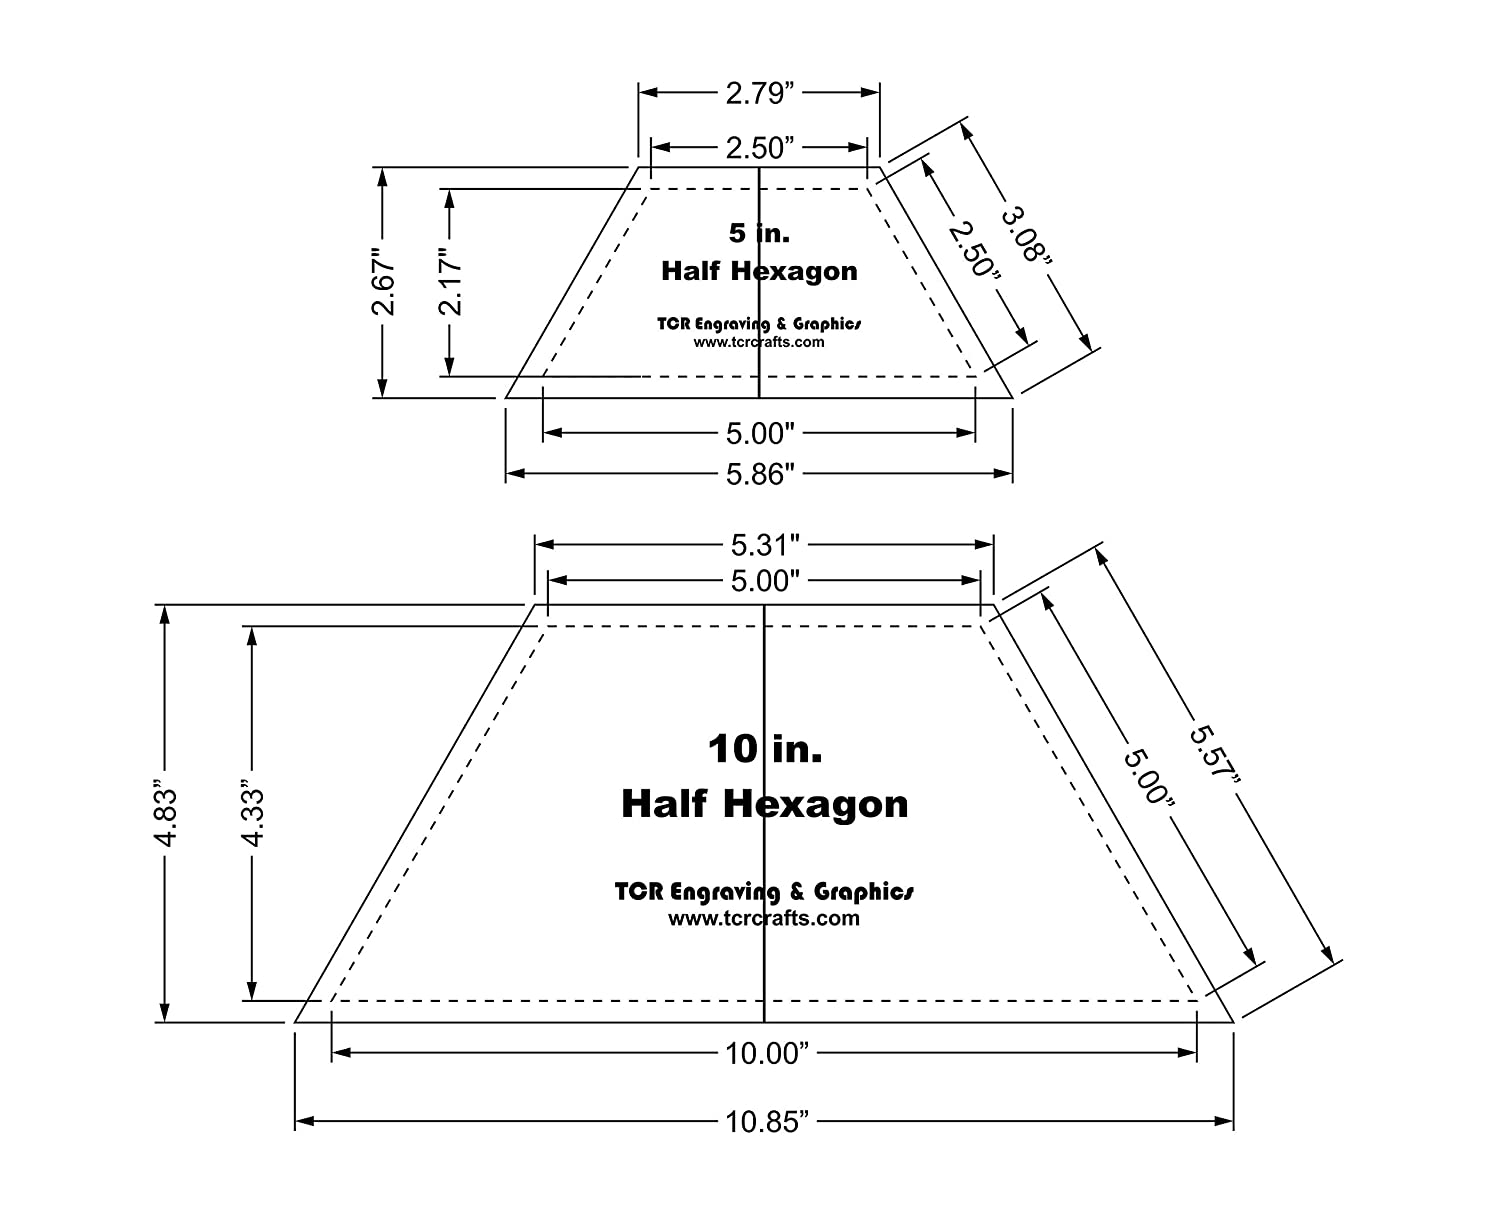 image about Hexagon Printable named 50 percent Hexagon Quilt Templates 5 and 10 Inches Apparent with Heart Manual 1/8 Inch Thick